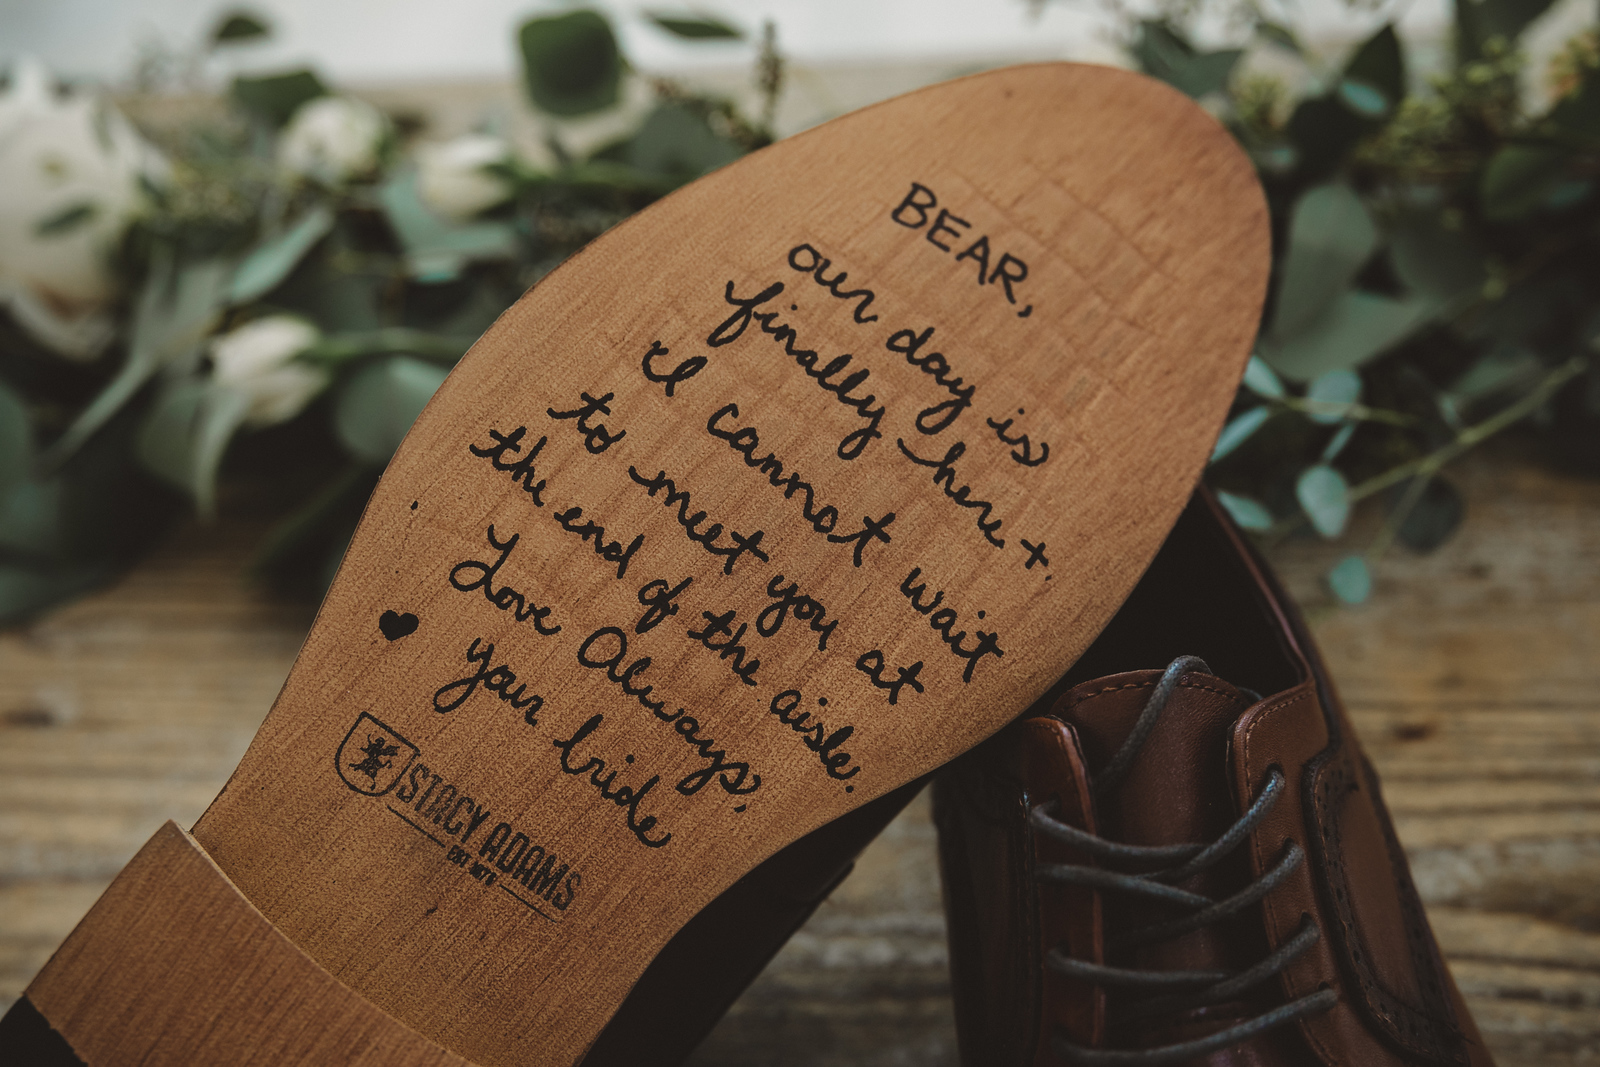 a groom's wedding shoes with a note from his bride on the sole